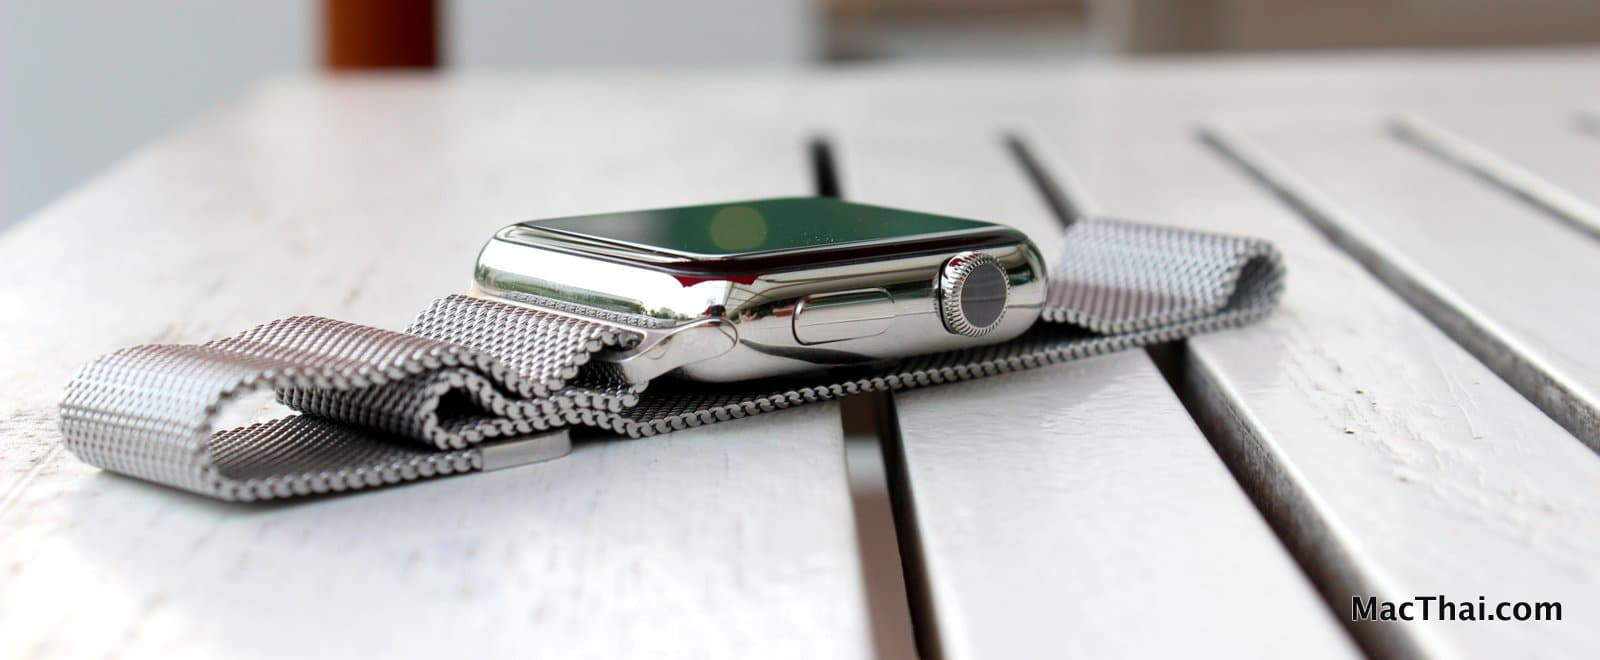 macthai-review-apple-watch-with-milanese-loop-pic-002